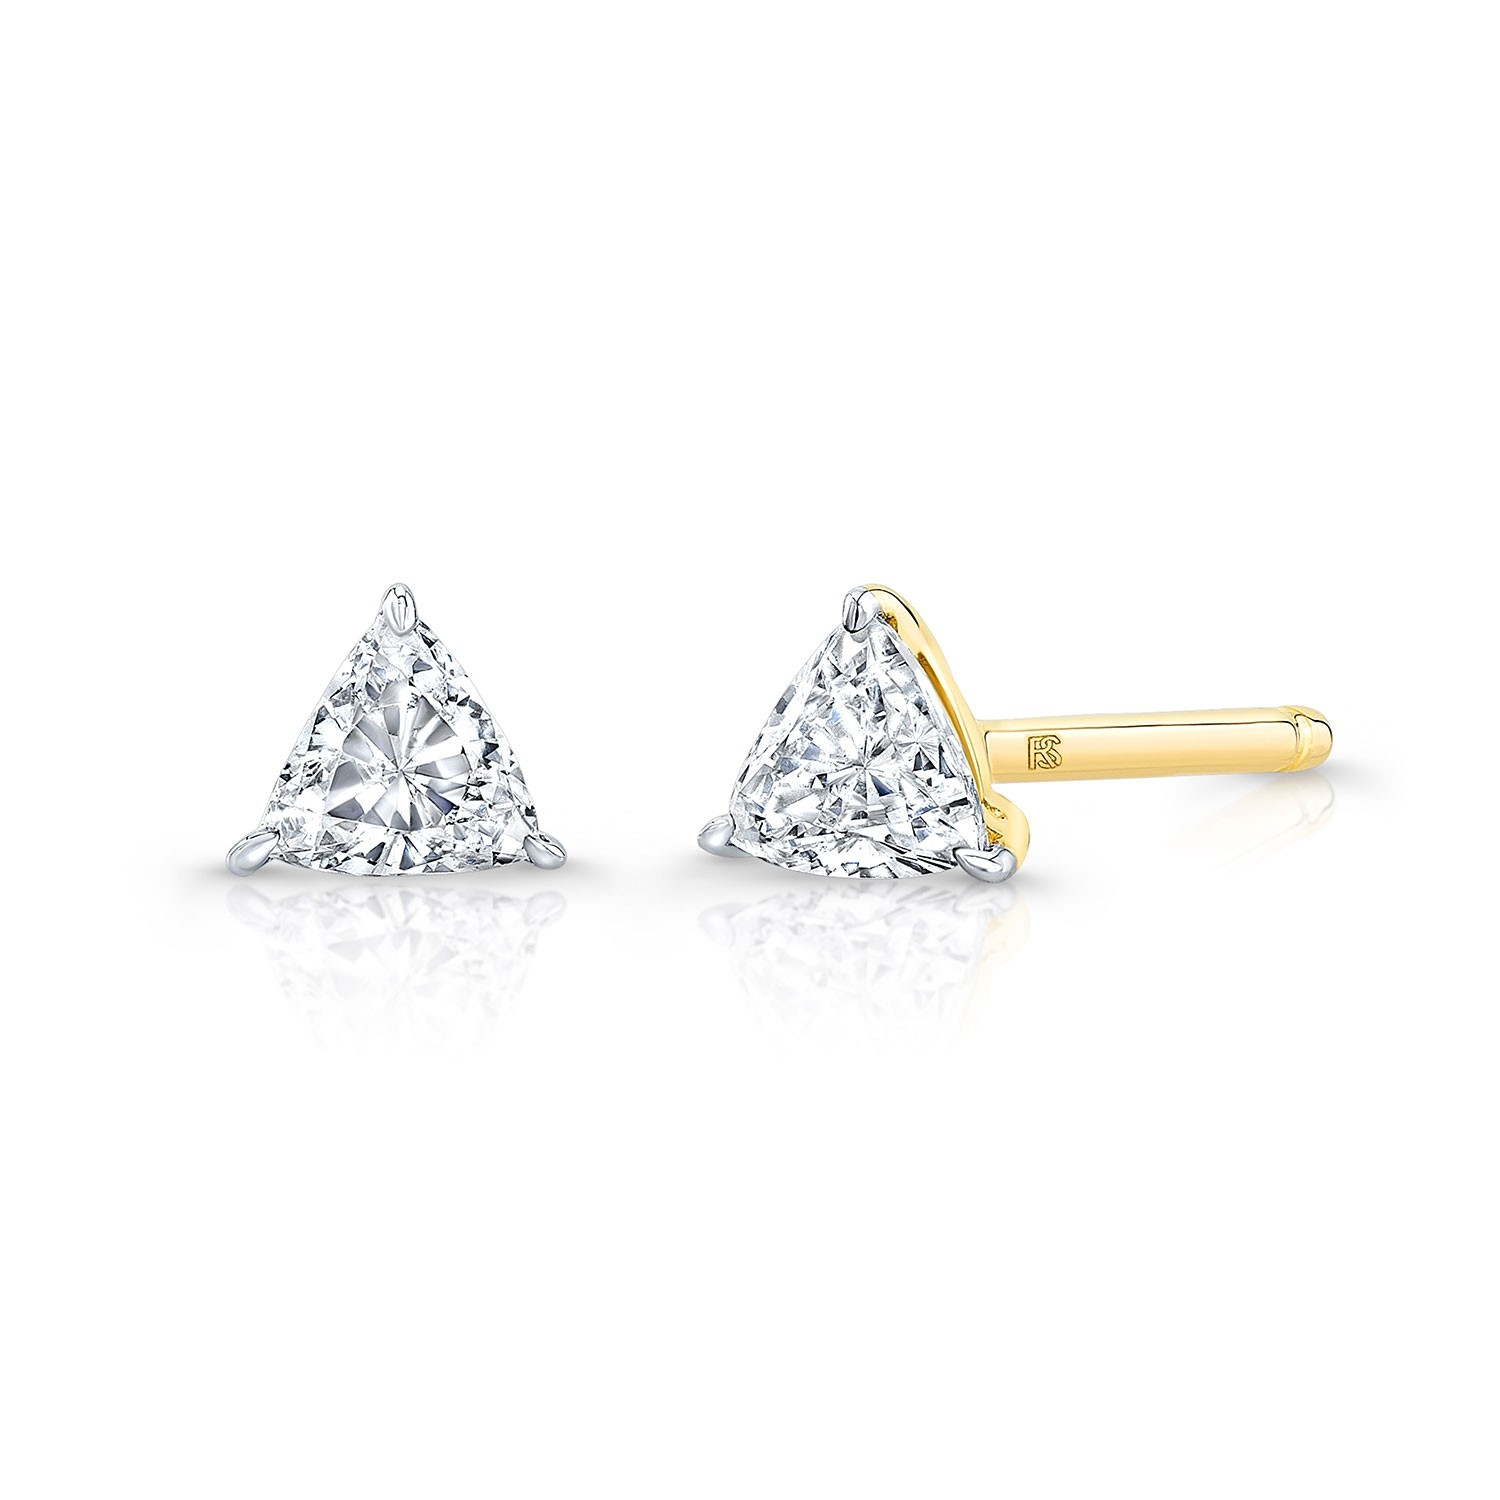 14k Yellow Gold Floating Trillion Cut Diamond Stud